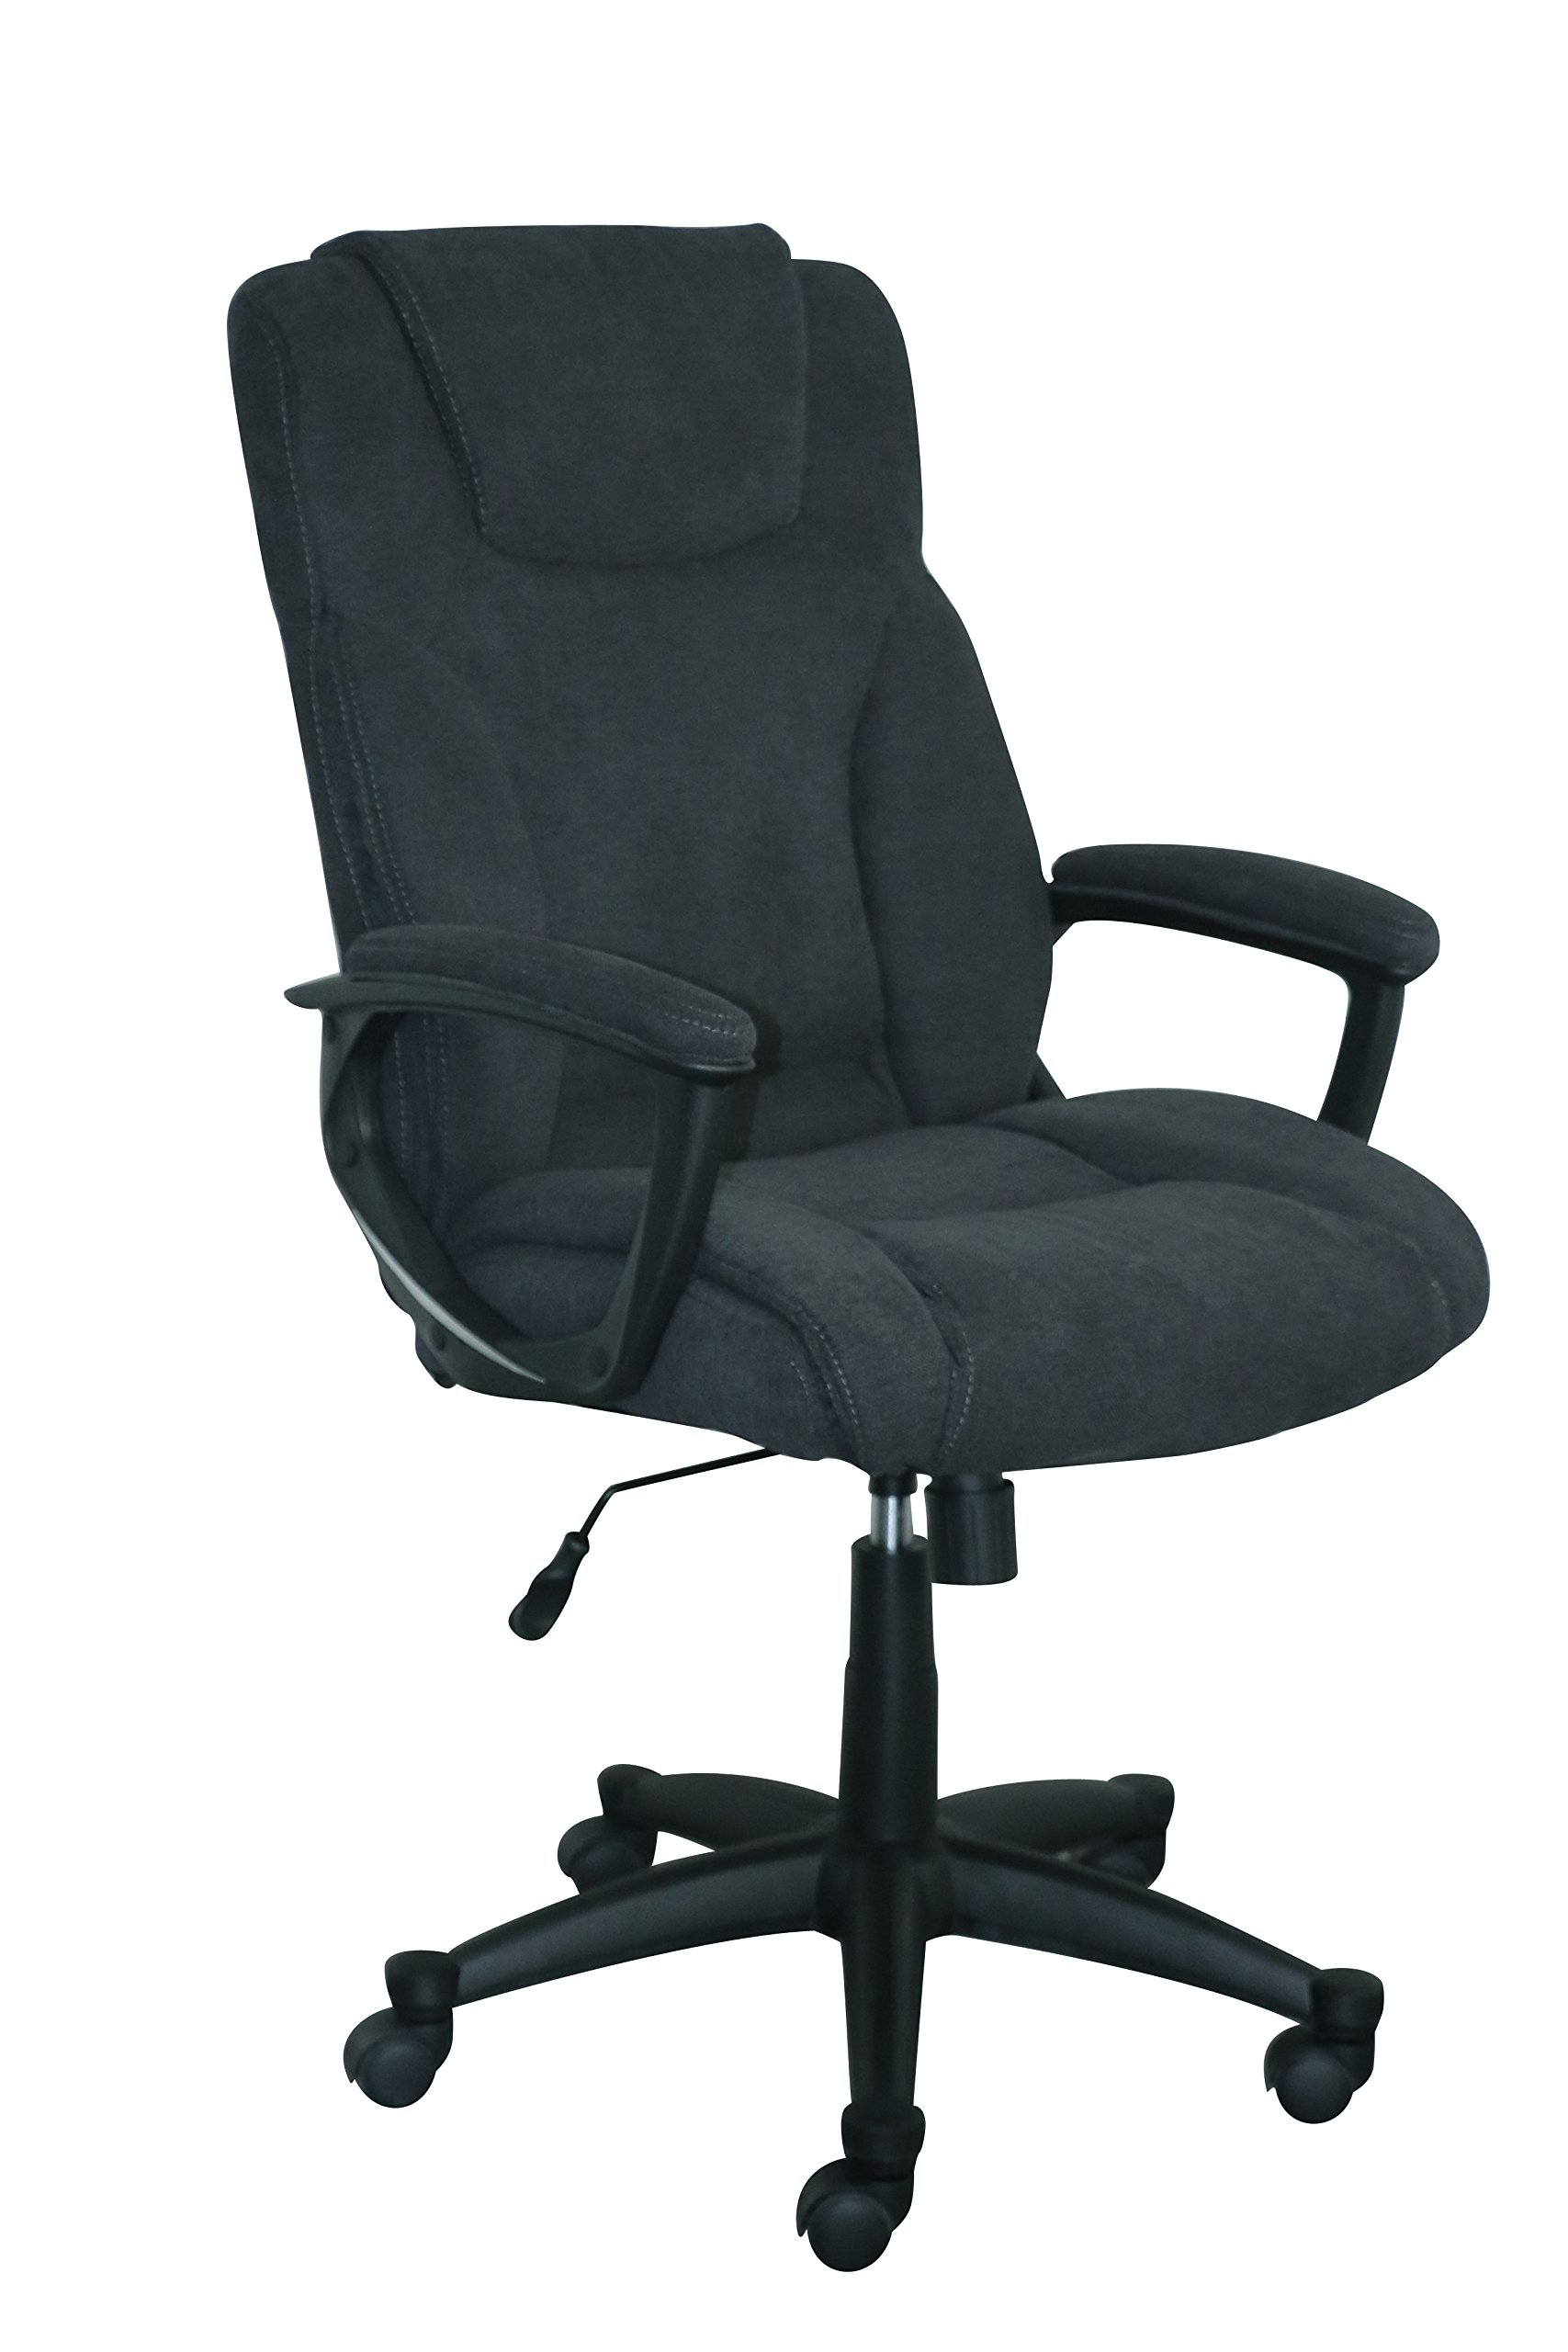 Serta Style Hannah II Office Chair, Microfiber, Black